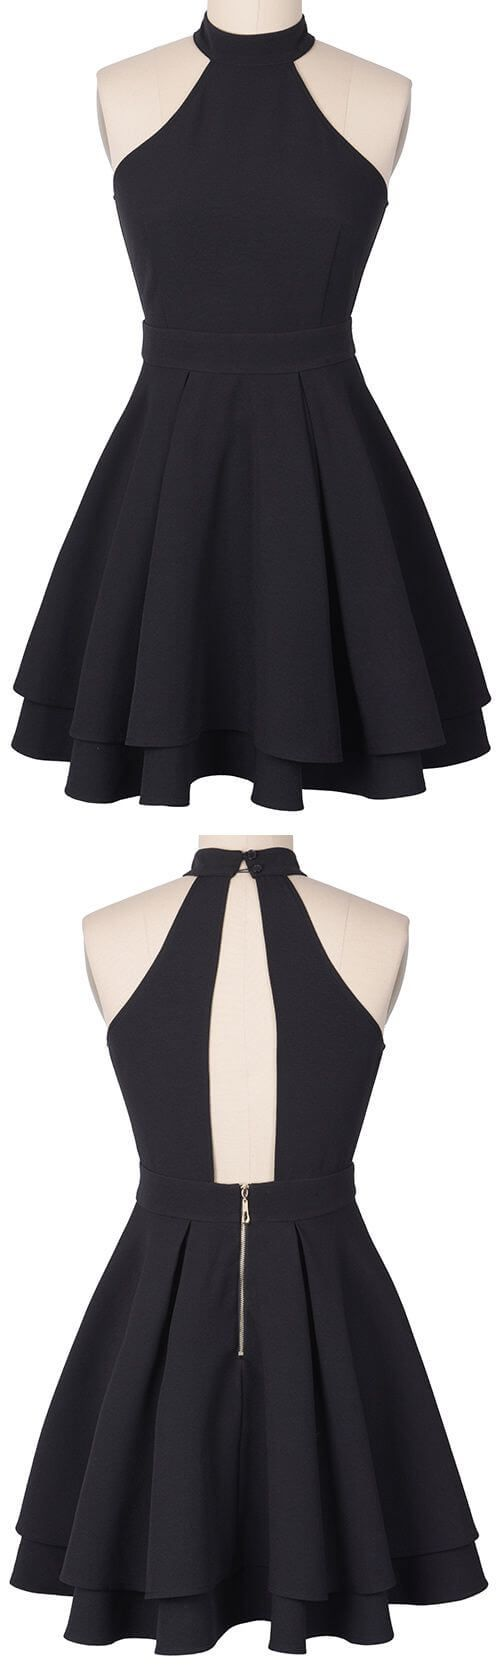 Follow Luna Tusuna for tons more beautiful, high quality images~♪☽♪☽⓴ ➎☾♪☾♪ This is so beautiful; open back unique structured two tiered layered skirt black probabl